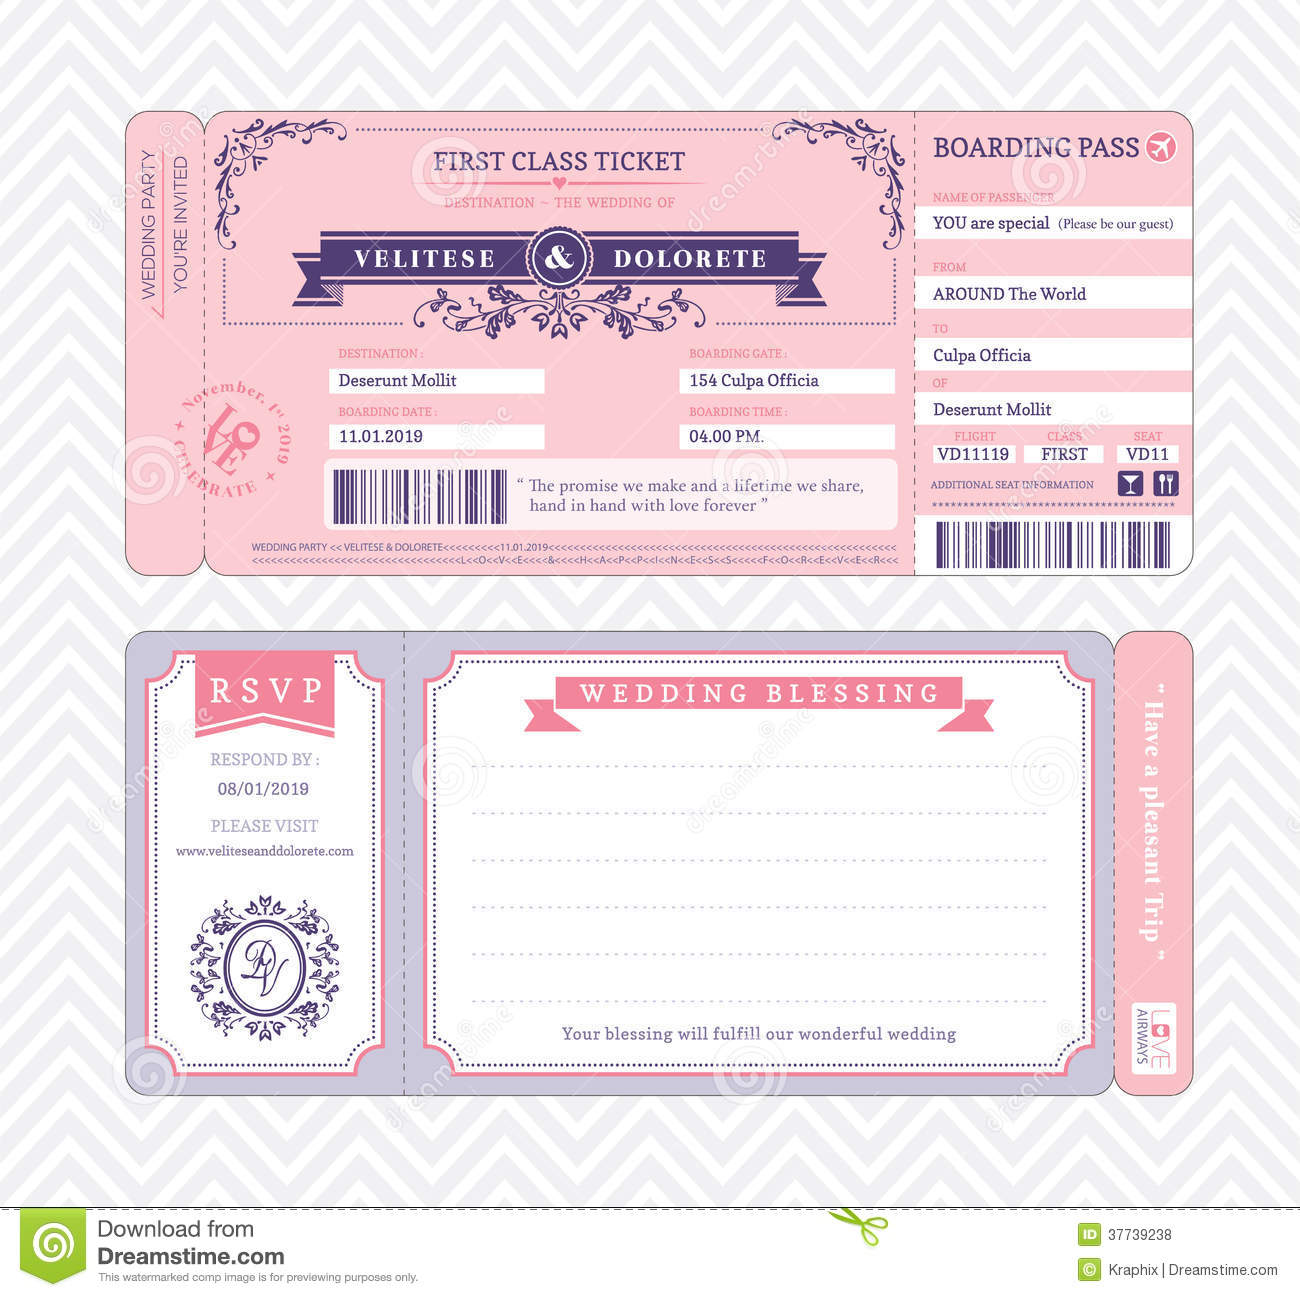 Boarding Pass Wedding Invitation Template  Printable Blank Tickets